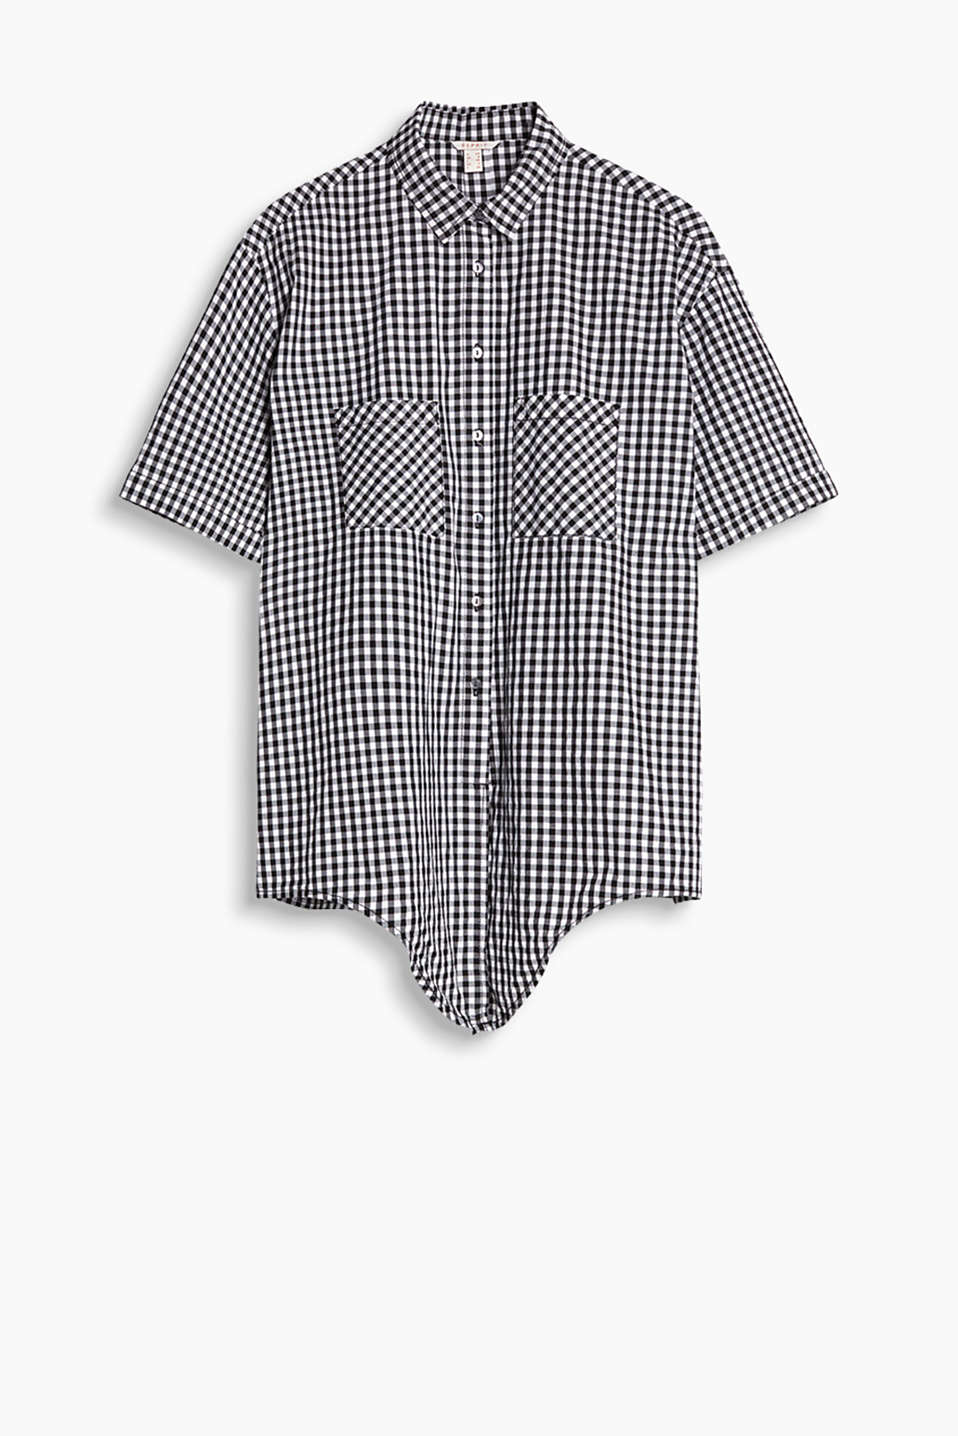 Blouse with a trendy gingham check pattern and knotted hem, 100% cotton